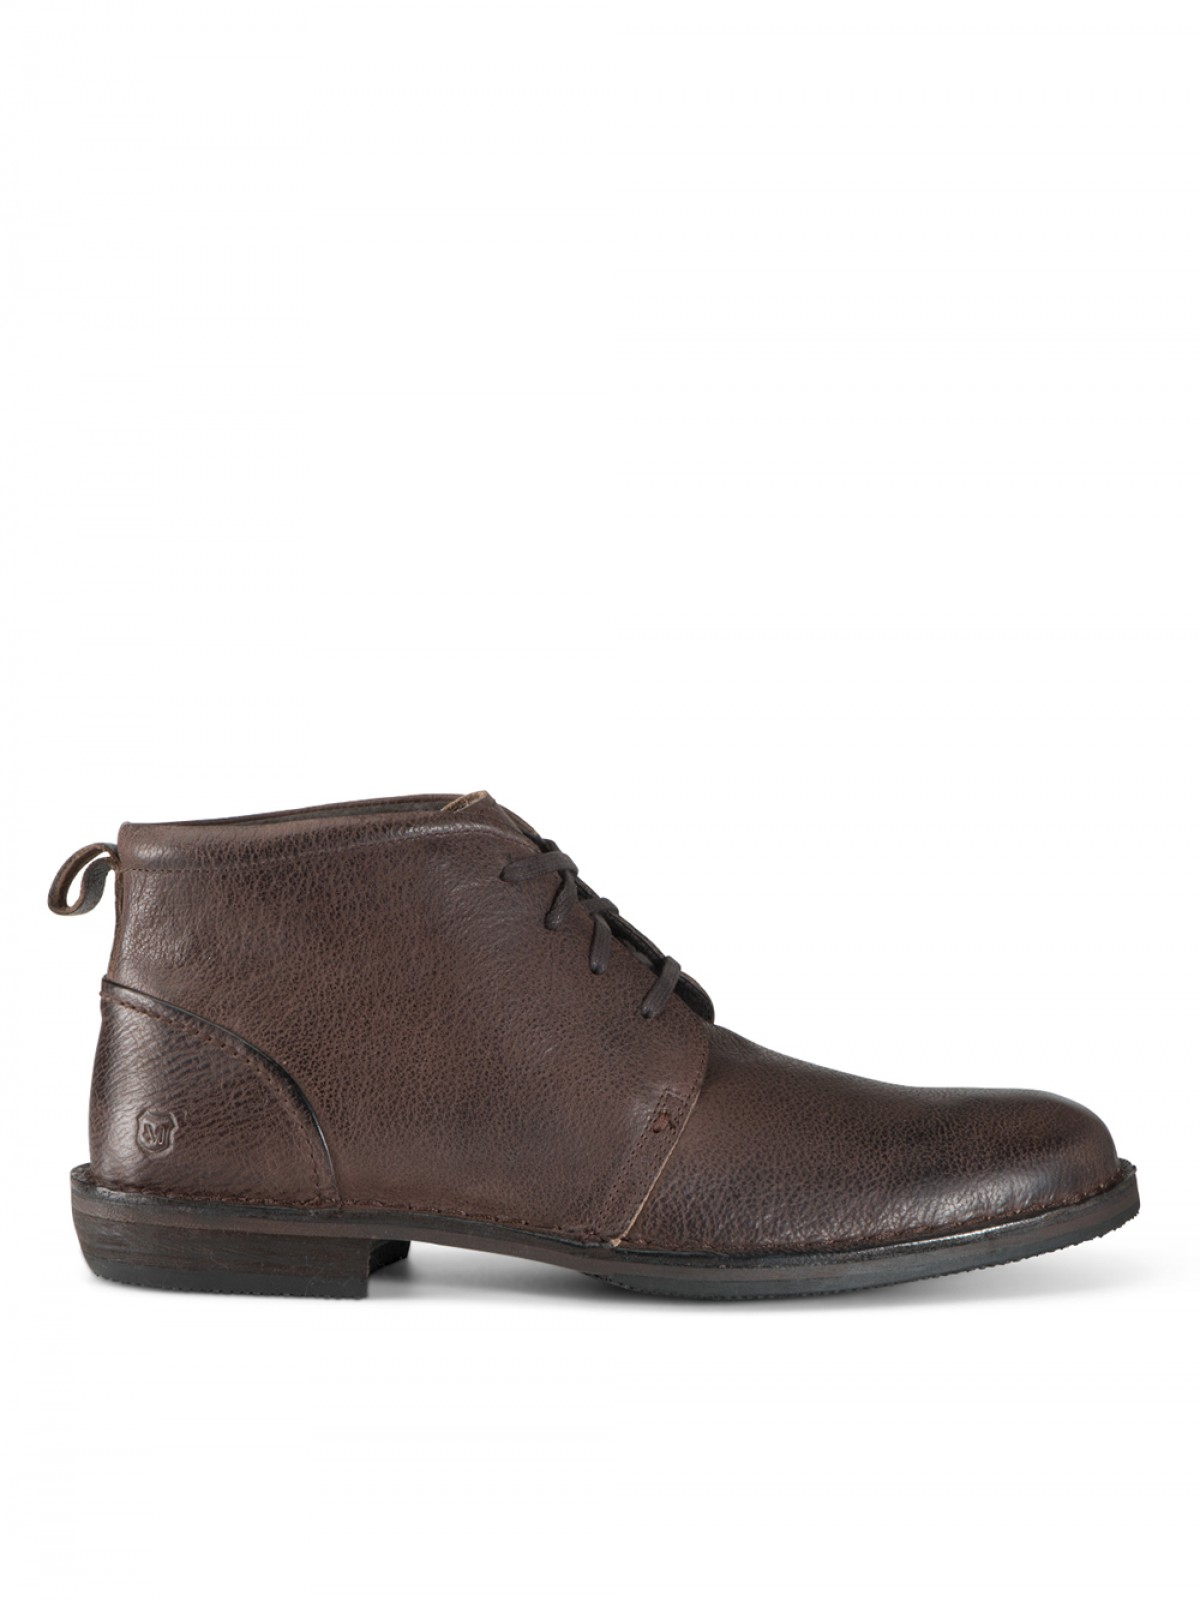 Clarks Shoes Greenwich